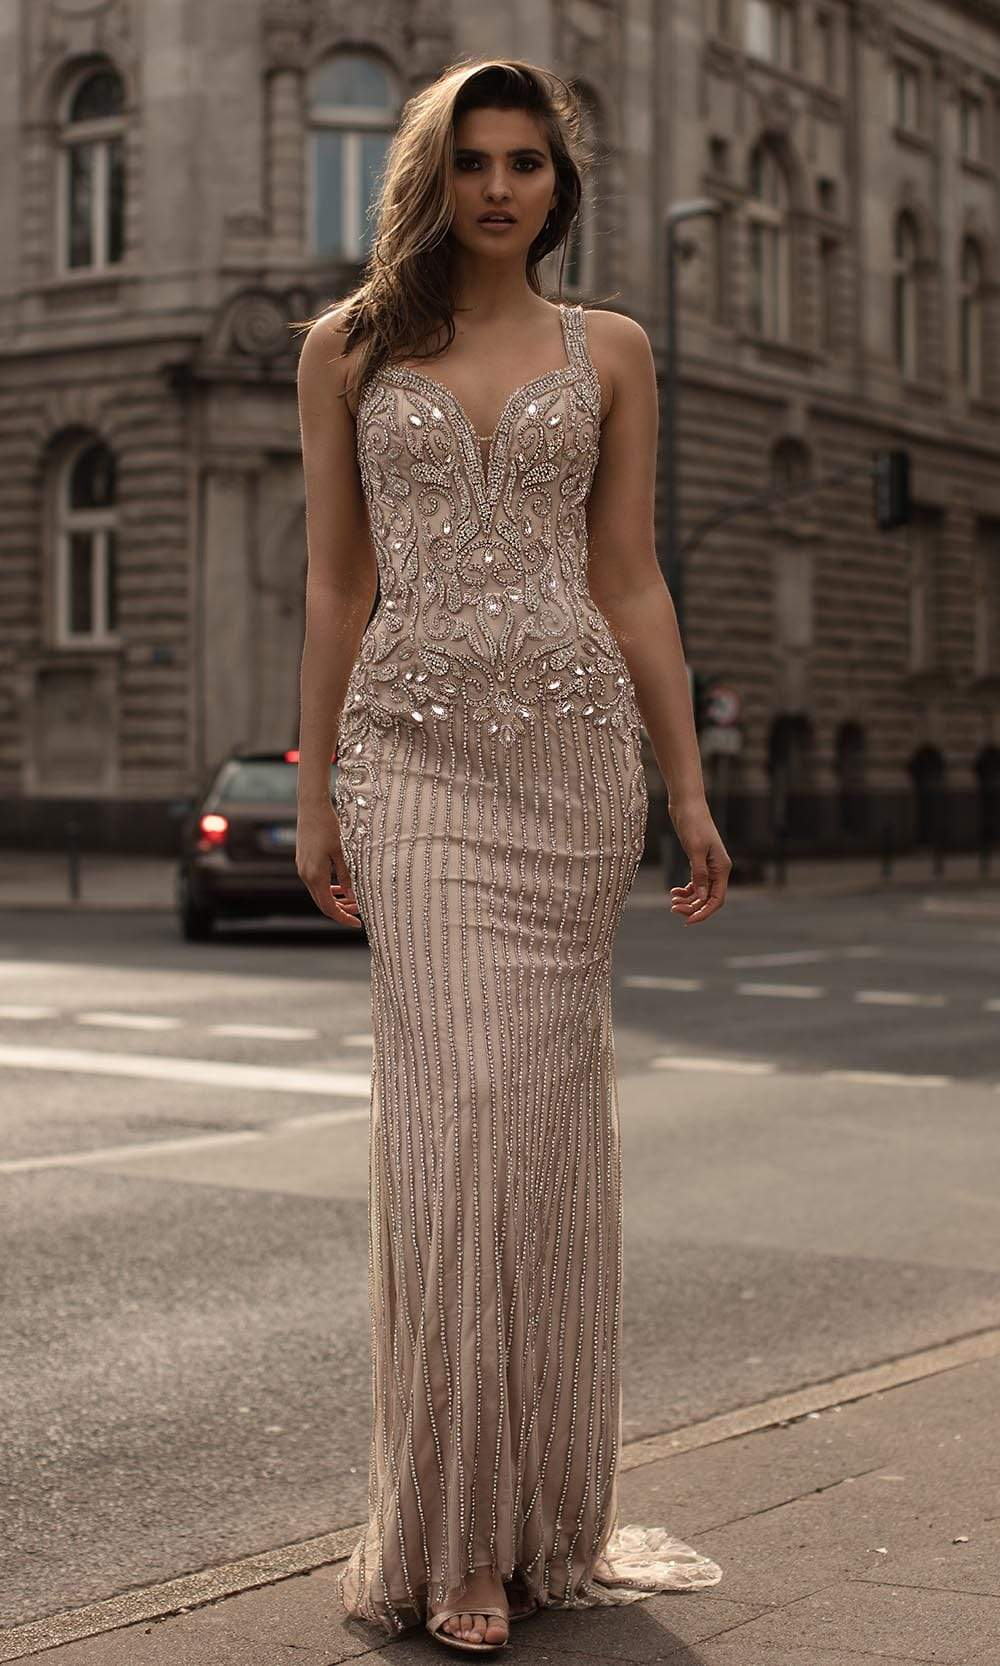 Chic and Holland - HF1542 Sleeveless Embellished Fitted Gown from Chic and Holland